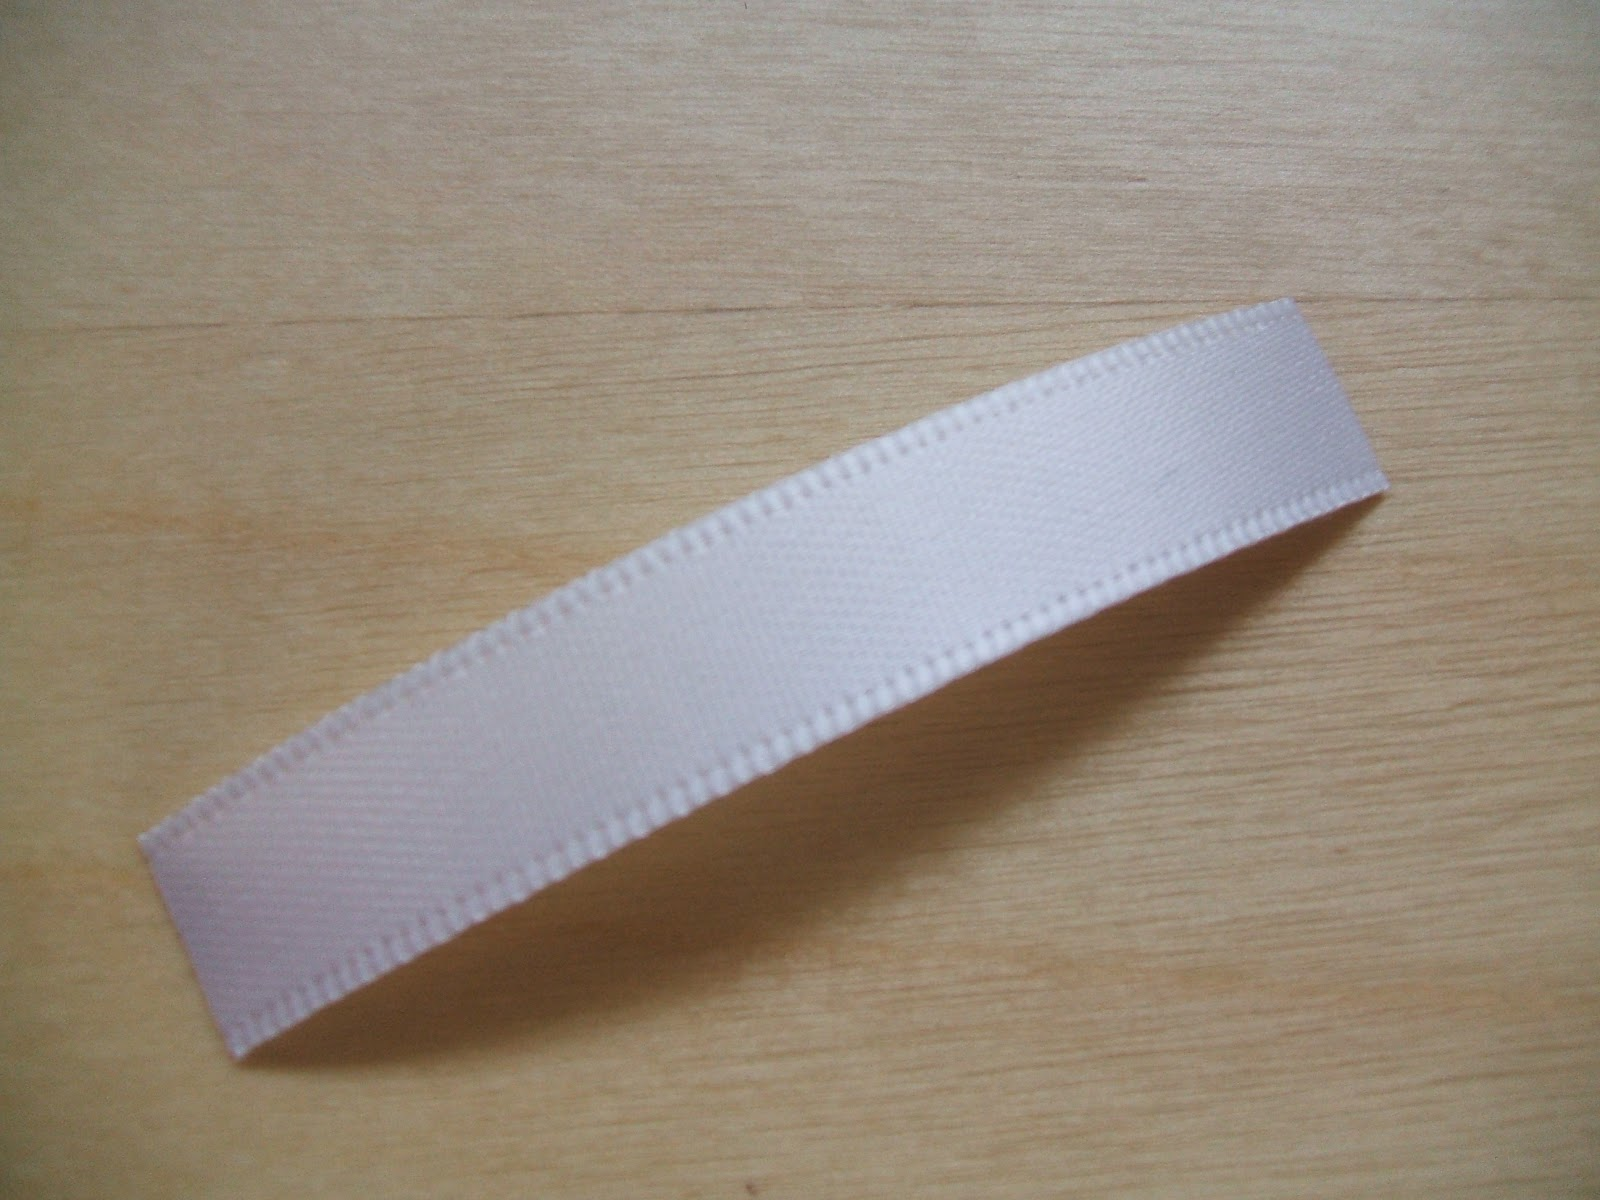 how to cut ribbon without fraying